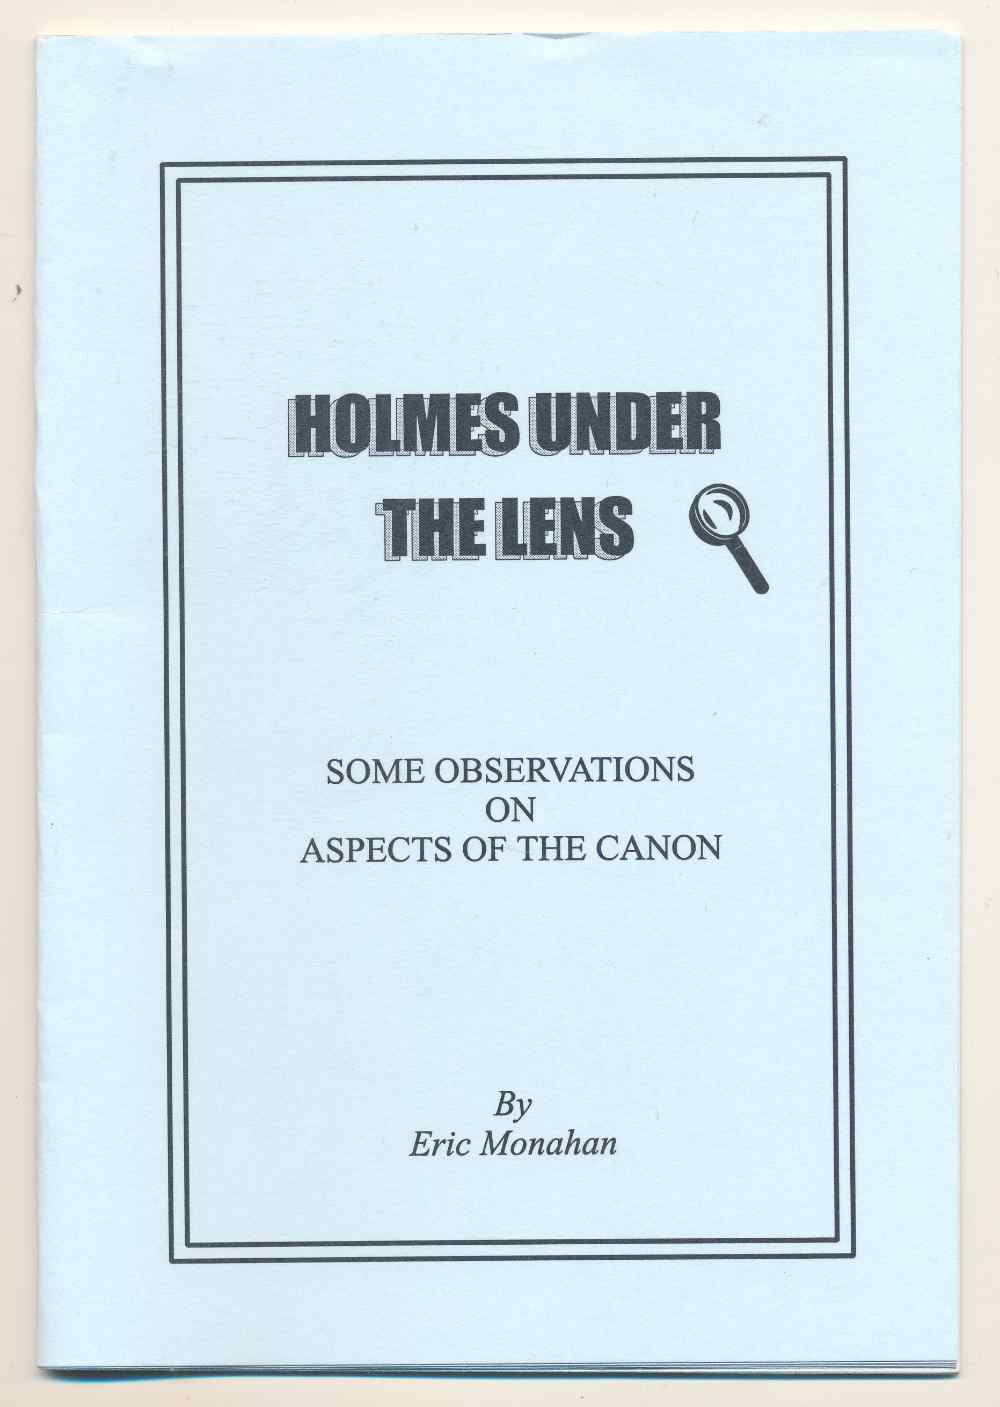 Holmes under the lens : some observations on aspects of the canon